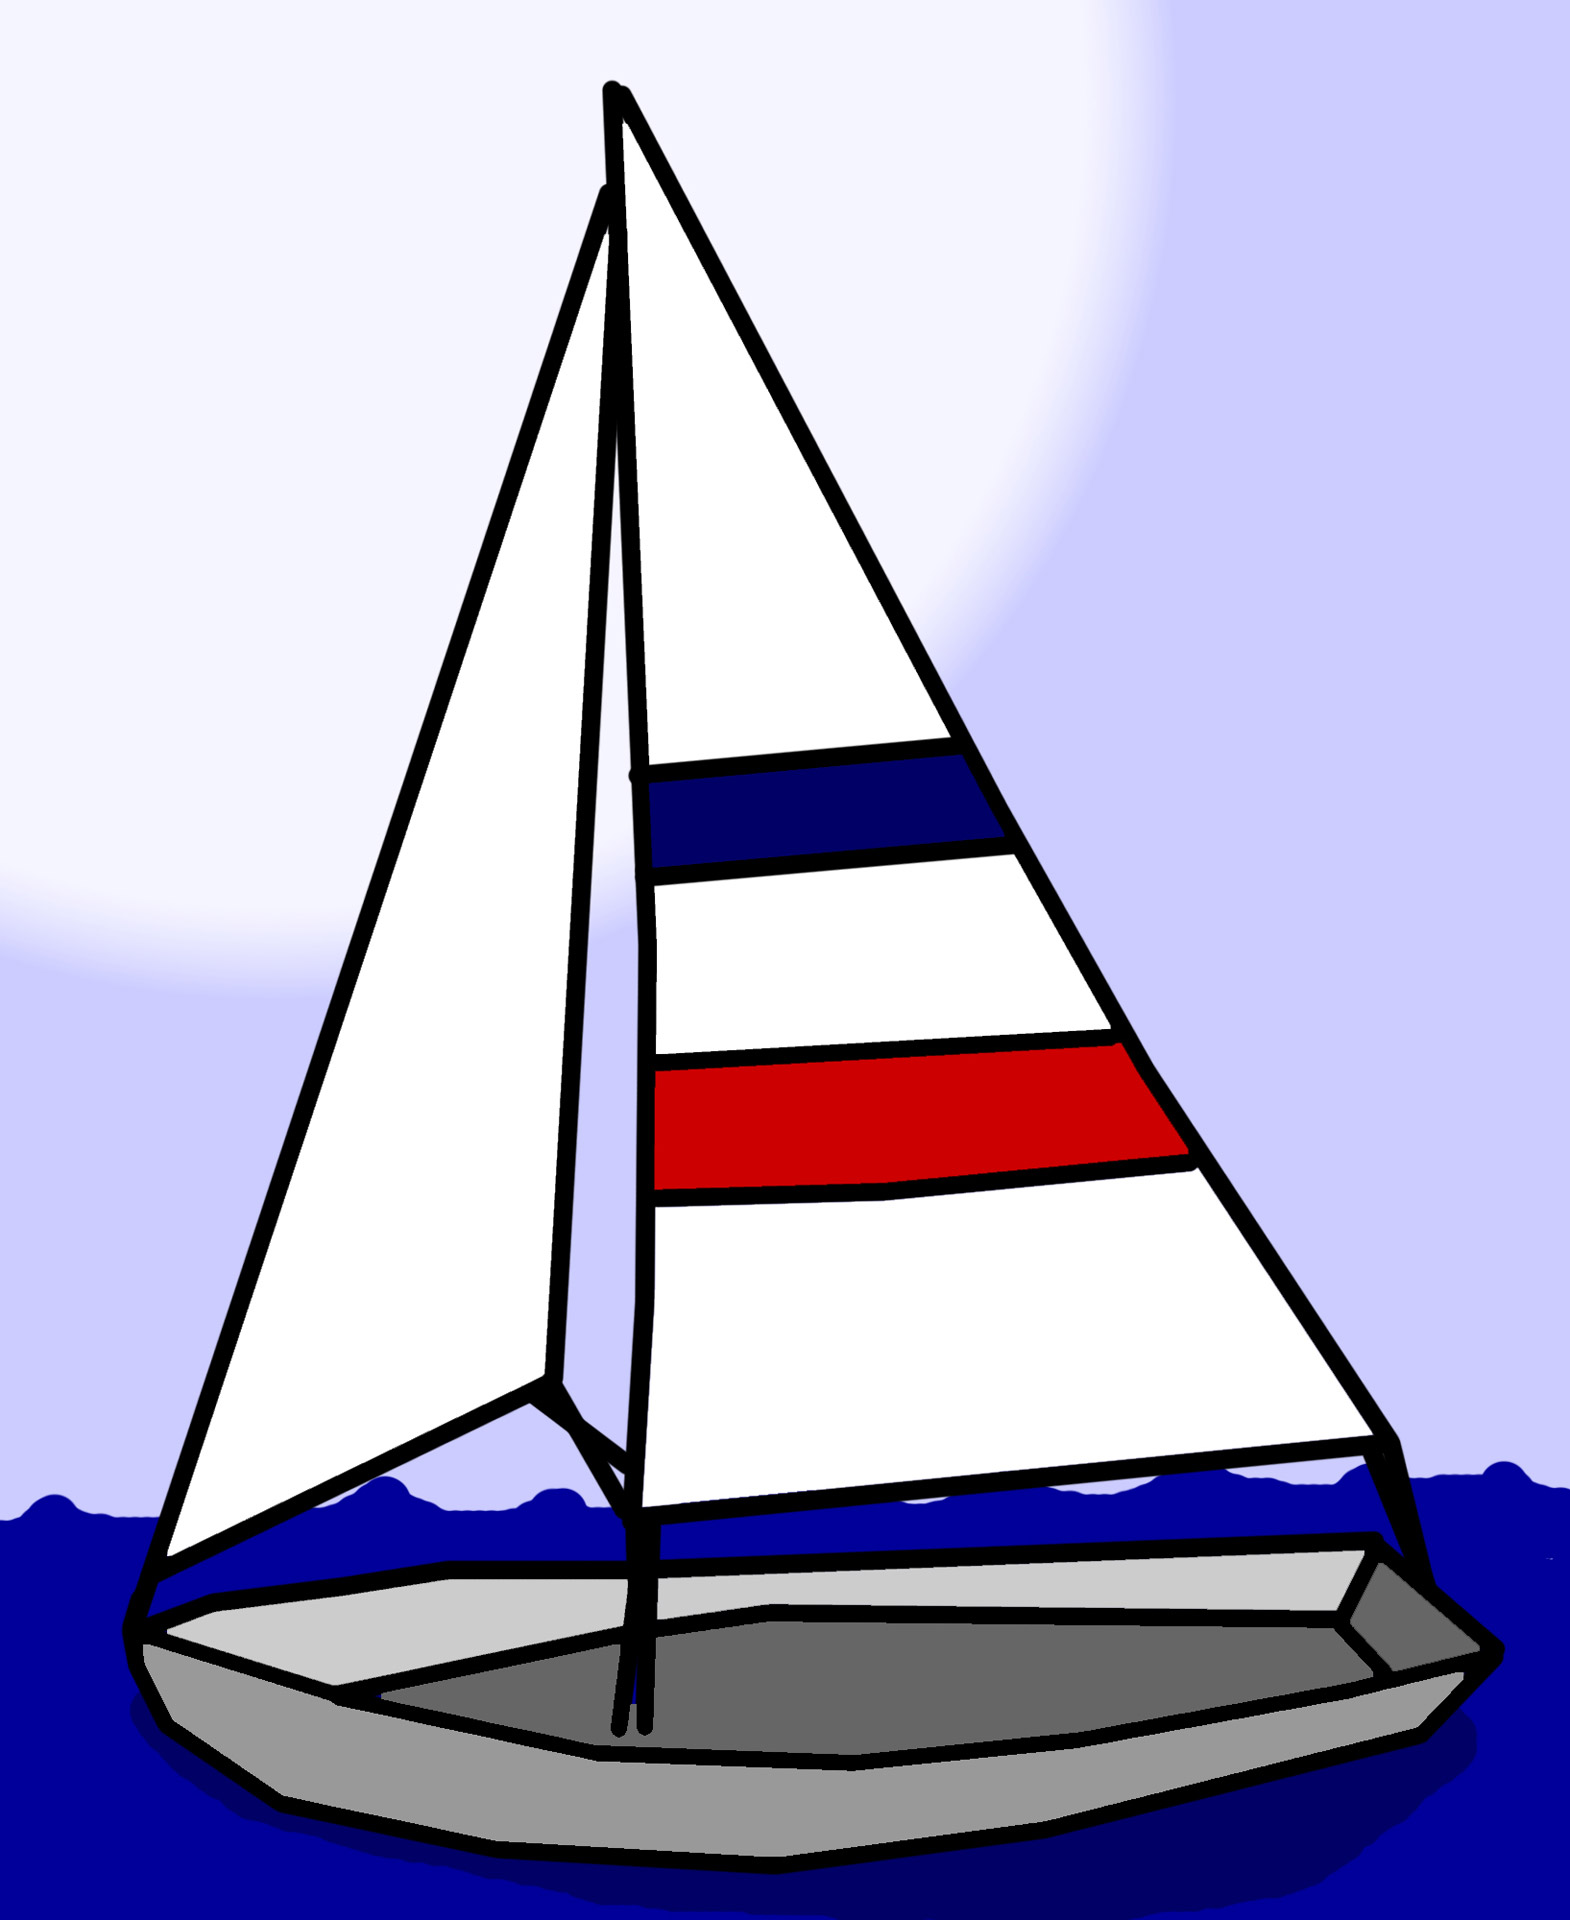 Barca clipart #4, Download drawings